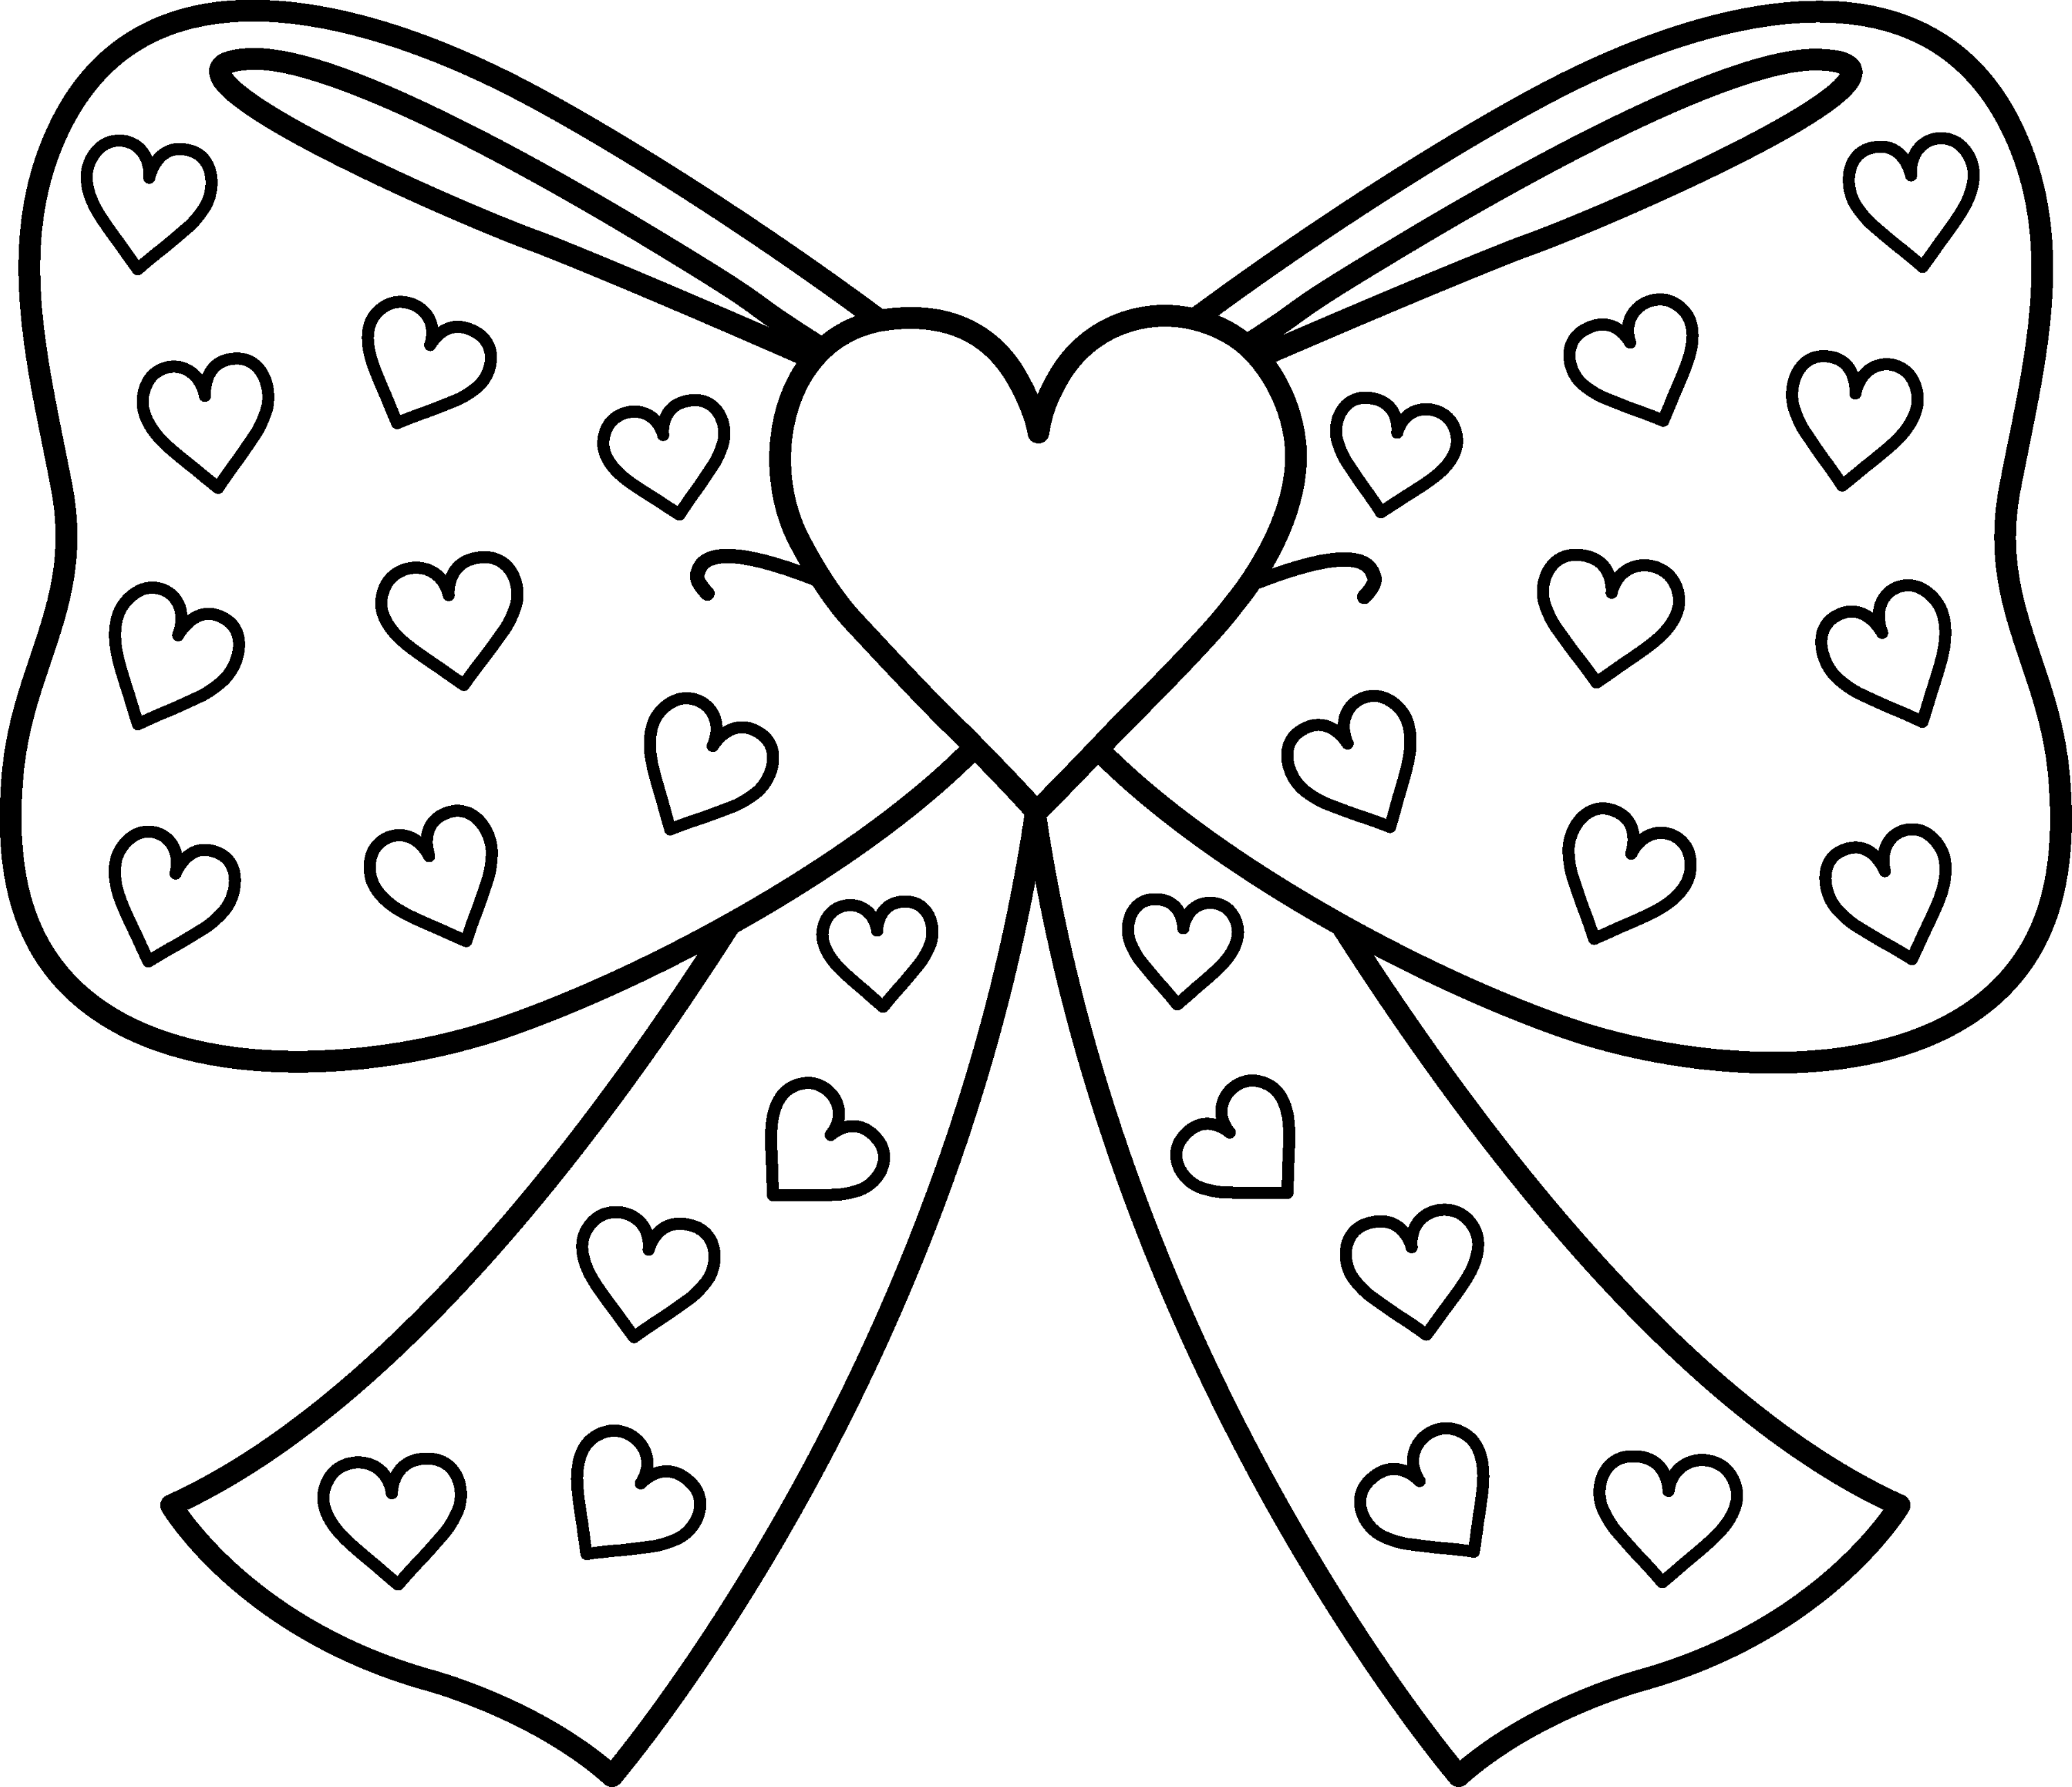 Clip Art Cute Heart Coloring Pages bow with hearts coloring page free clip art page